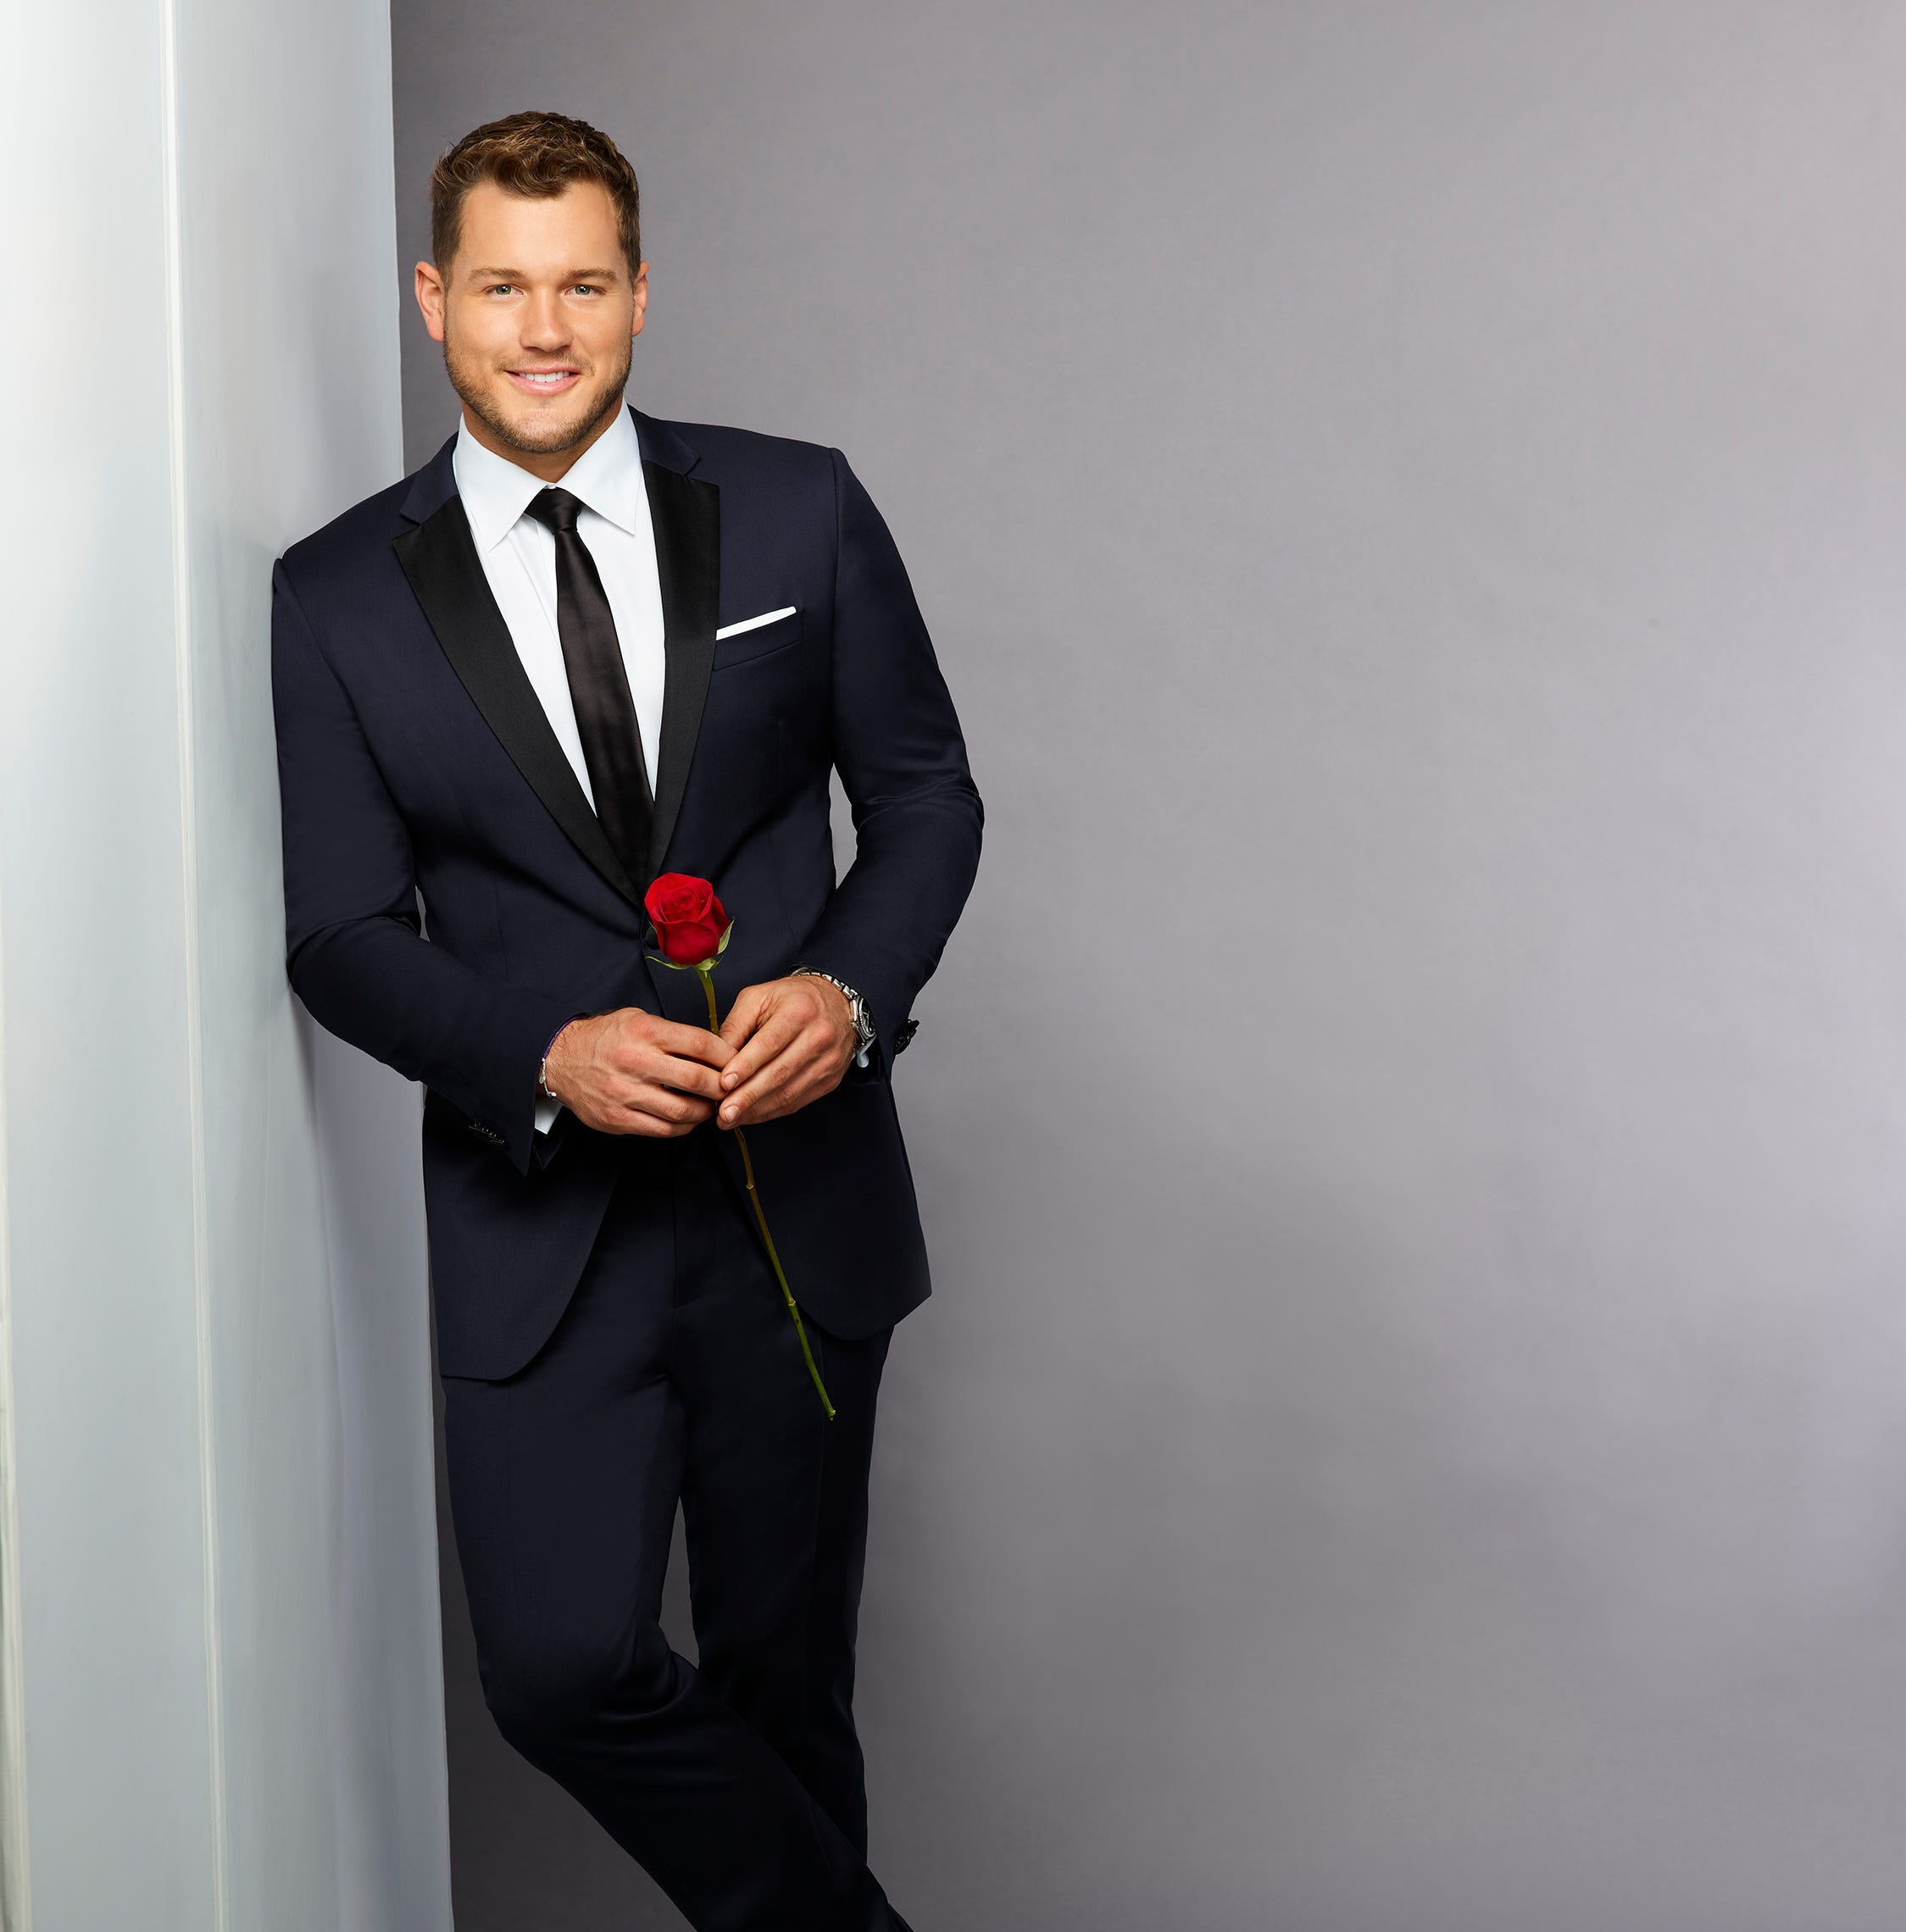 "THE BACHELOR - Colton Underwood burst onto the scene during season 14 of ""The Bachelorette."" It was his good looks, love for dogs and vulnerability that charmed not only Bachelorette Becca Kufrin, but all of Bachelor Nation. This former NFL player made a play for BeccaÕs heart but was sadly sent home after professing he had fallen in love. Now Colton is back and ready to capture hearts across America yet again when he returns for another shot at love, starring in the 23rd season of ABCÕs hit romance reality series ""The Bachelor,"" when it premieres in January 2019. (ABC/Craig Sjodin)